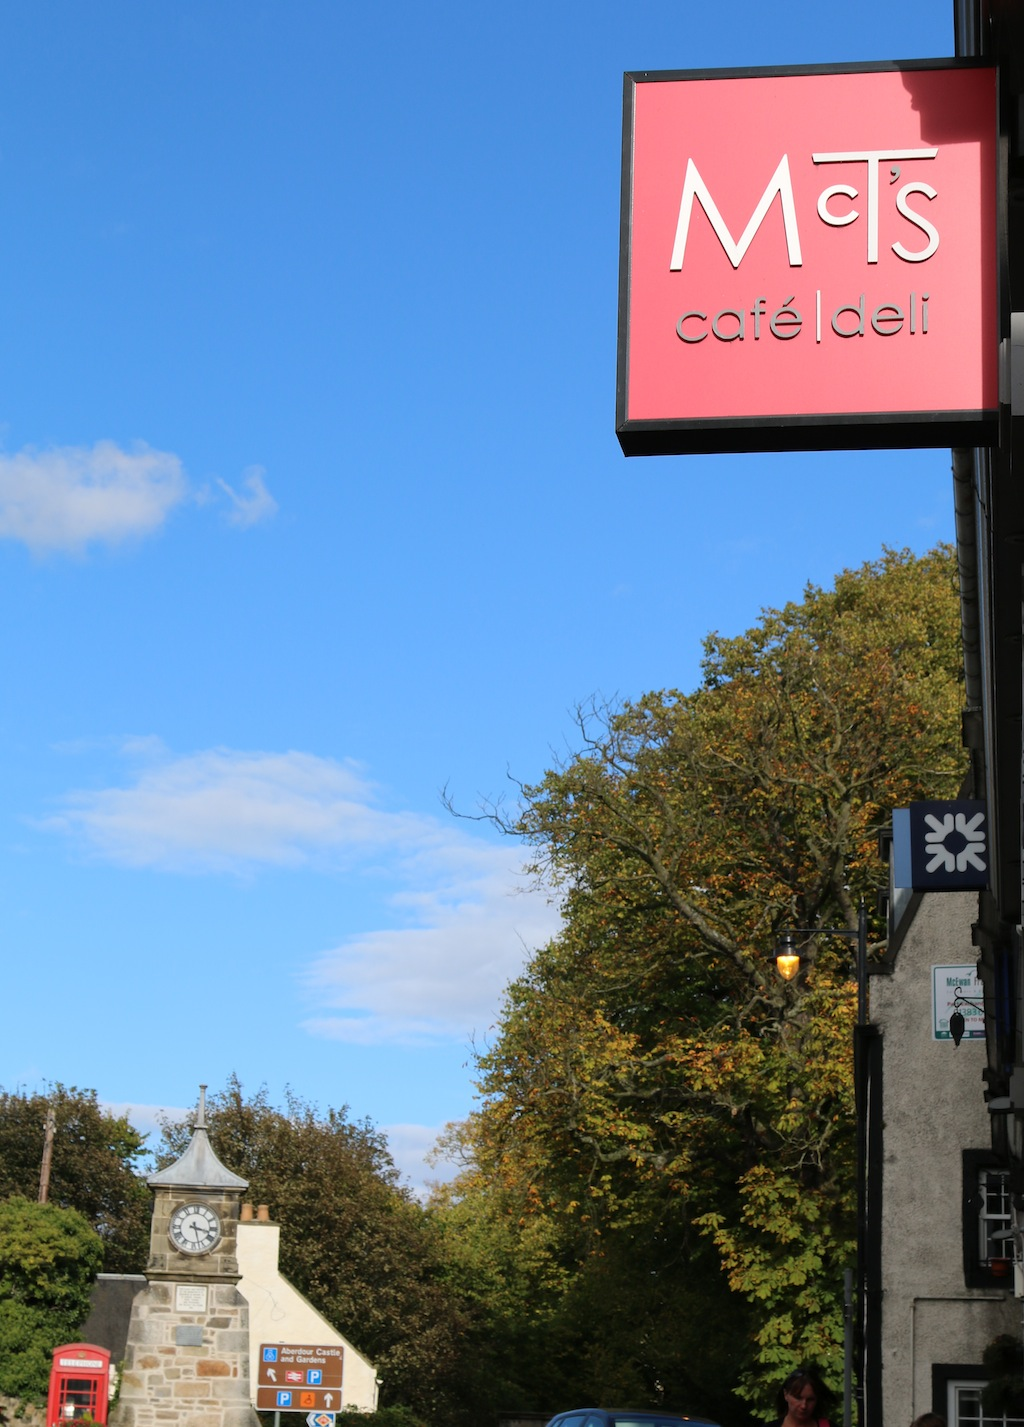 McTaggart's_Cafe_Deli_Aberdour_Fife5